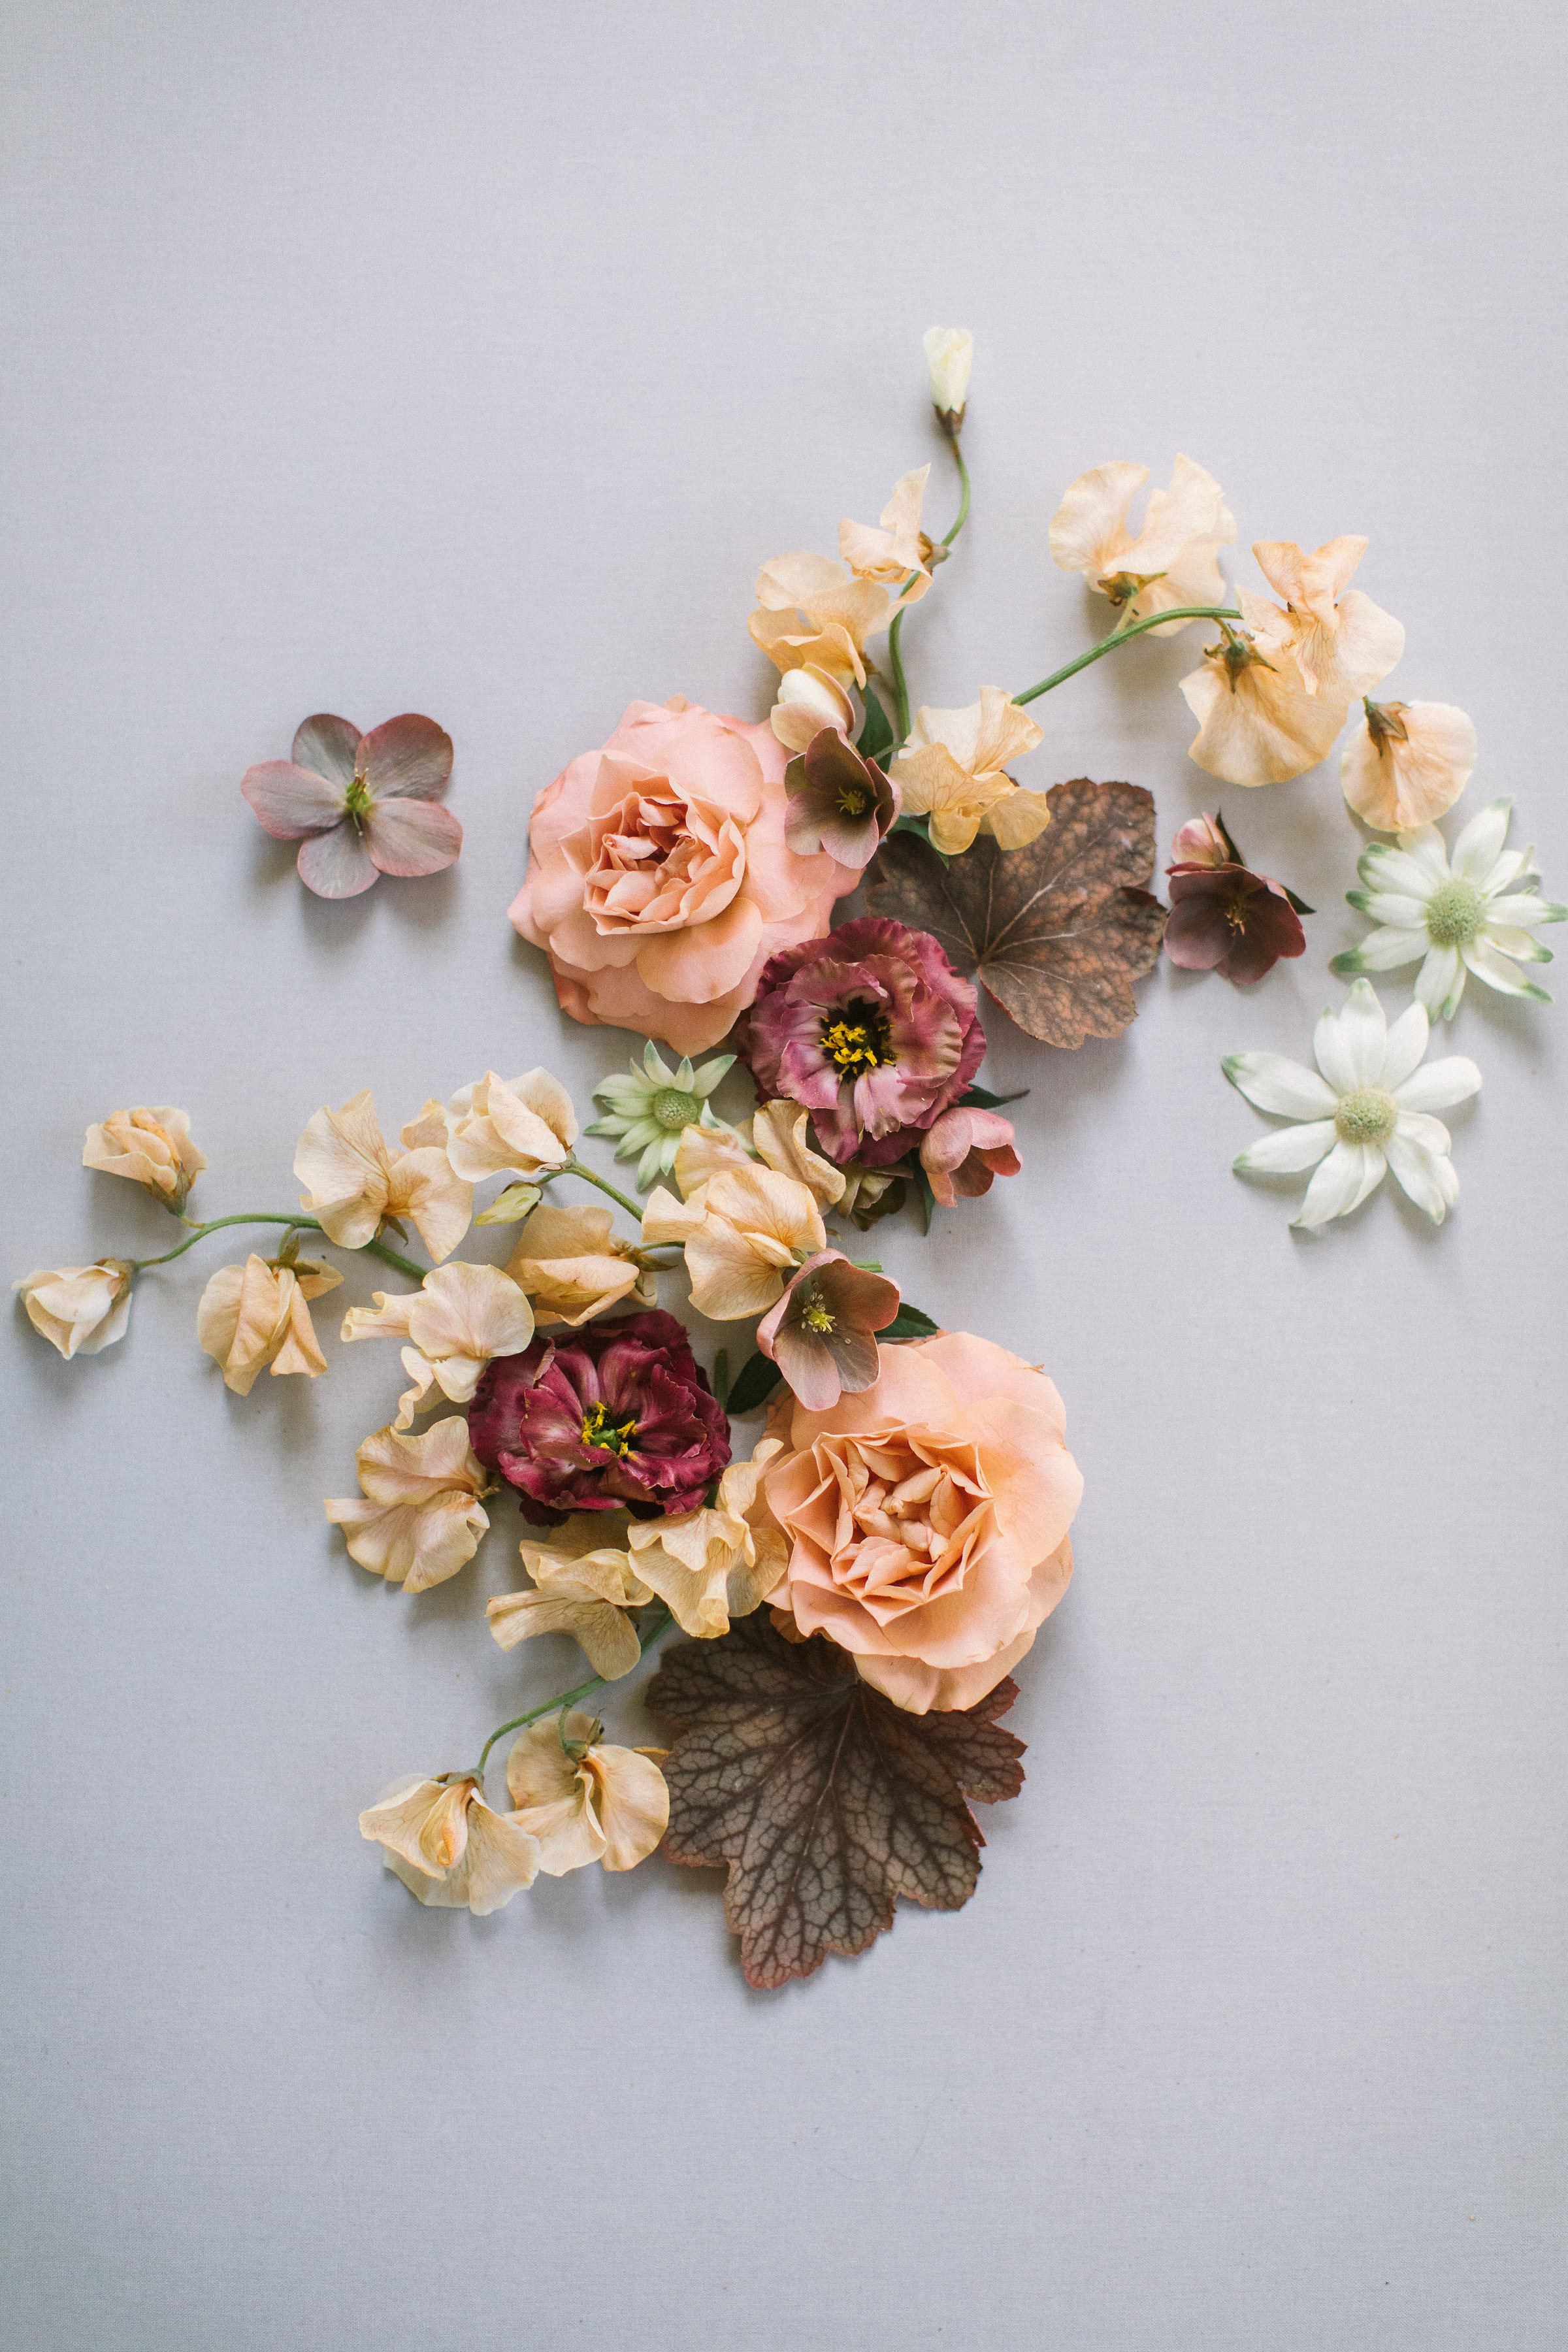 Ellen-Ashton-Photograph-Grit-and-Gold-Weddings-and-events-Moss-Floral-Designs-BA-Beauty117.jpg